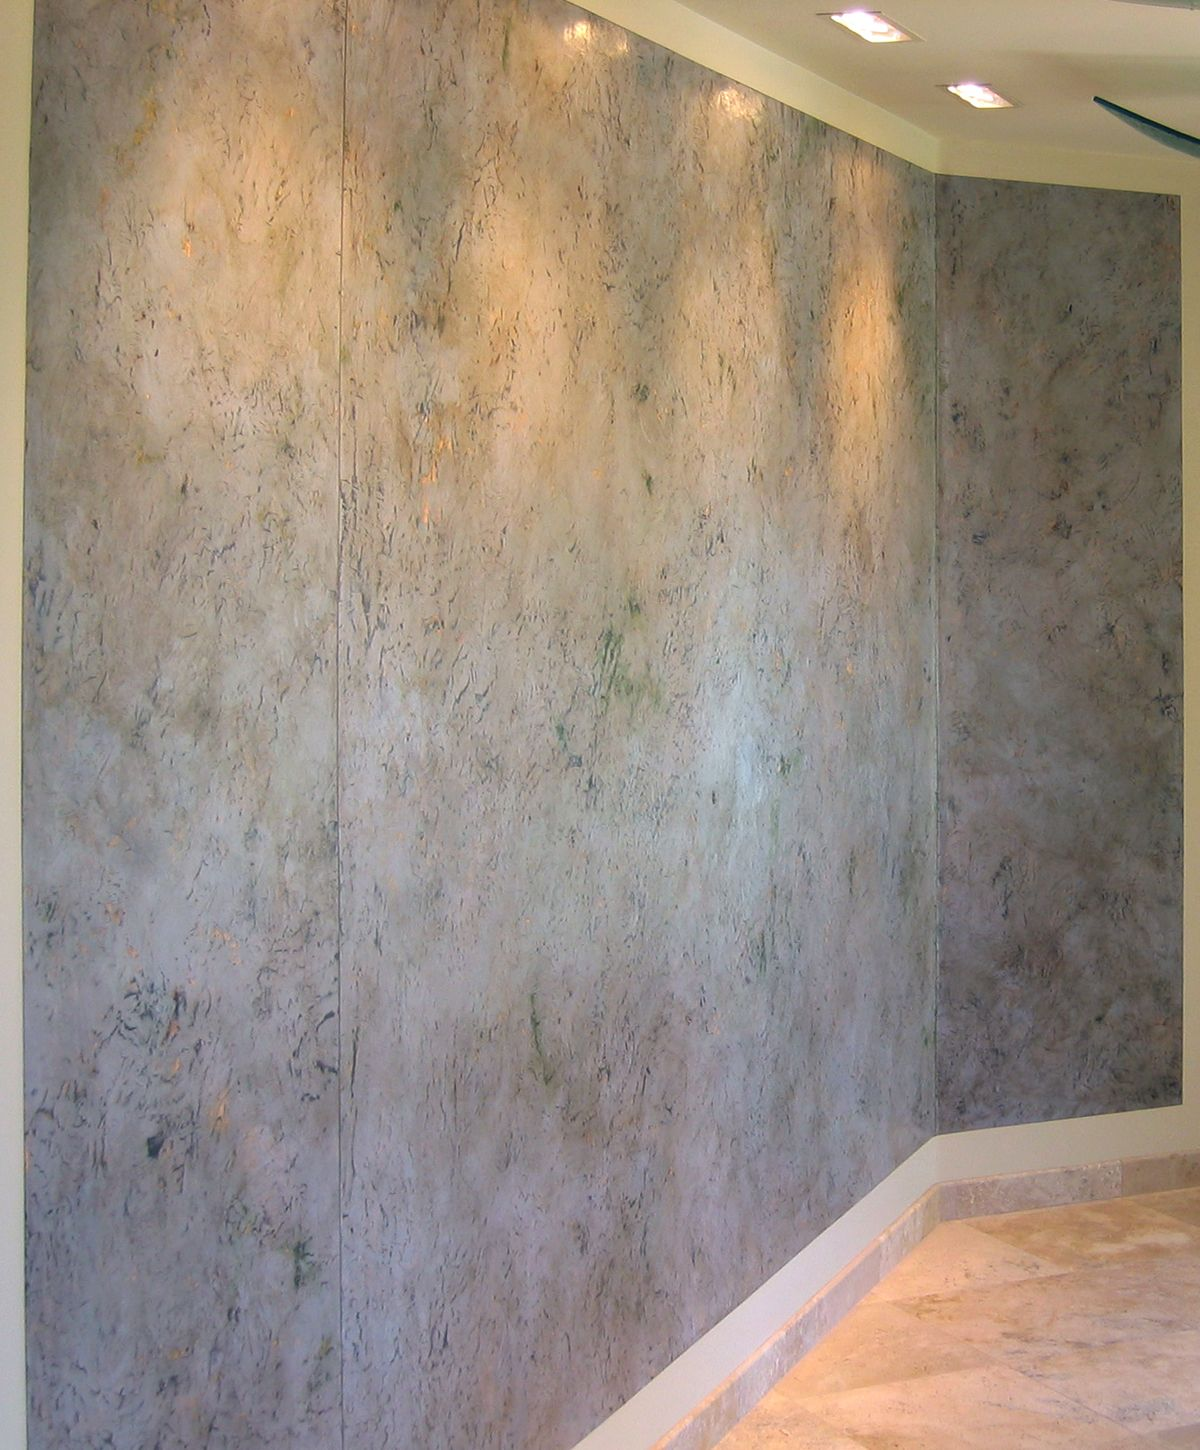 Polished Venetian Plaster Wall Finishjohn Hiemstra Creative